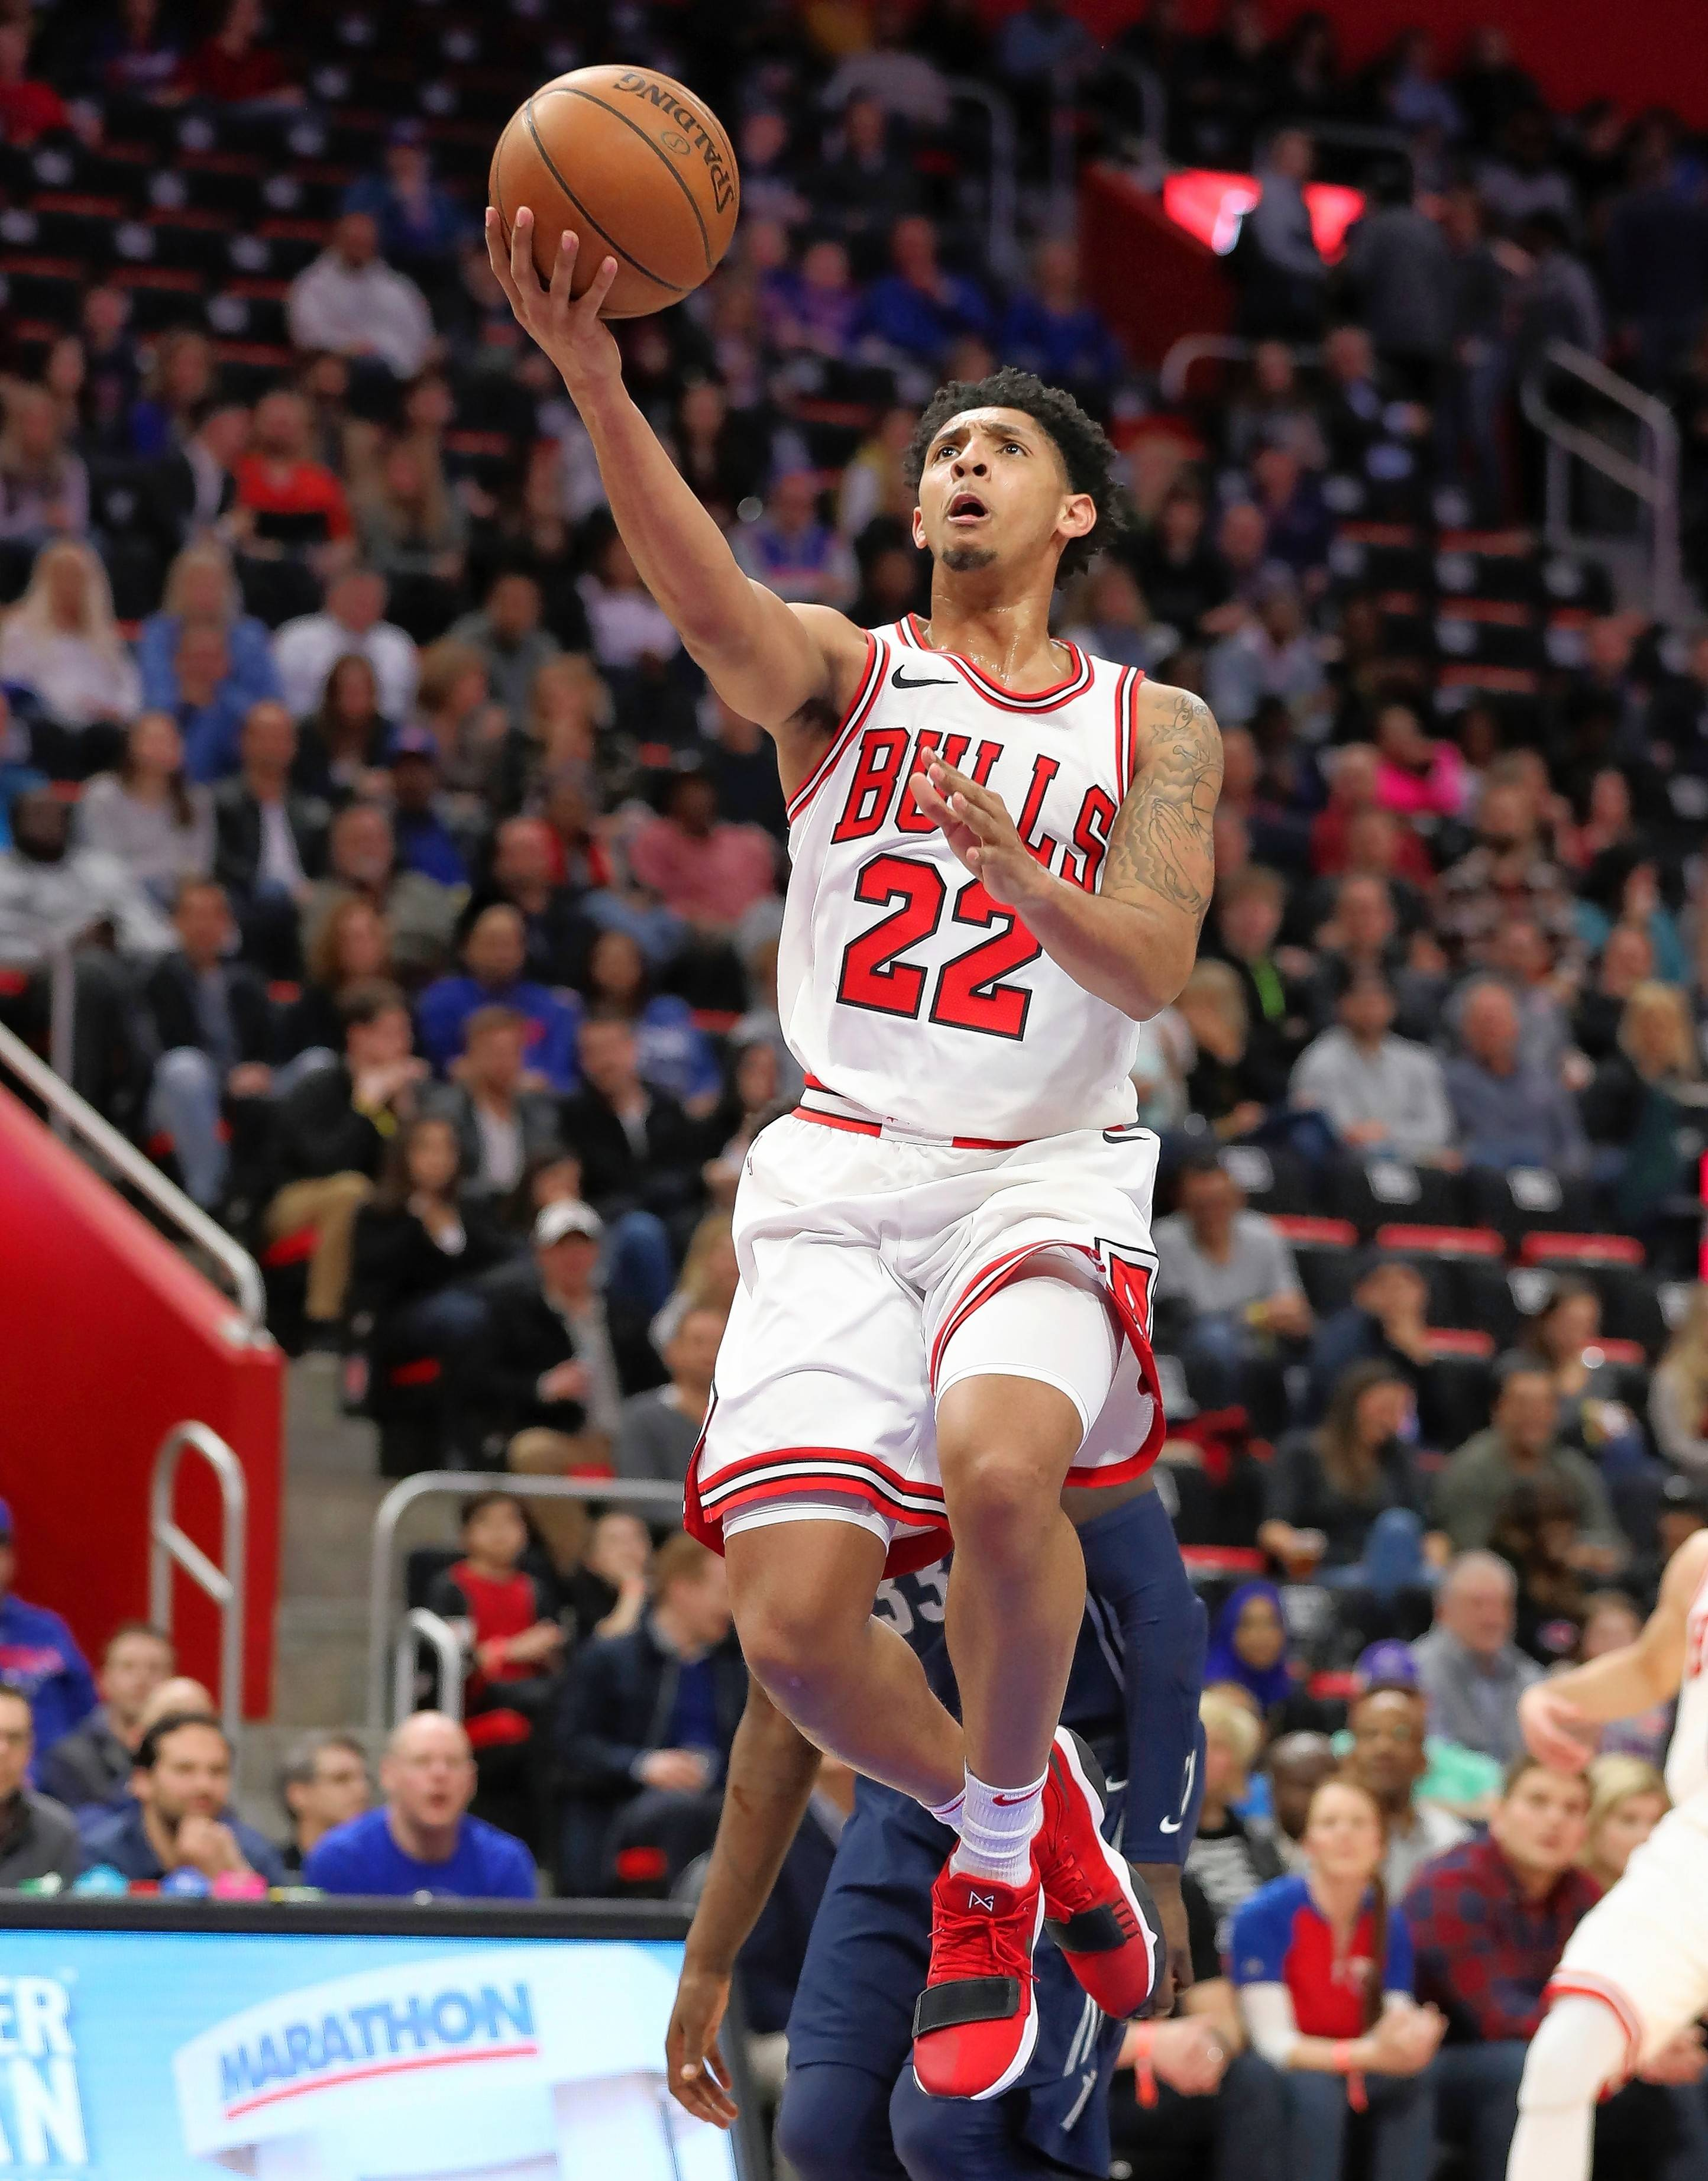 Chicago Bulls point guard Cameron Payne has averaged 10.2 points and 2.4 assists over the past five games while leading the team's second unit.